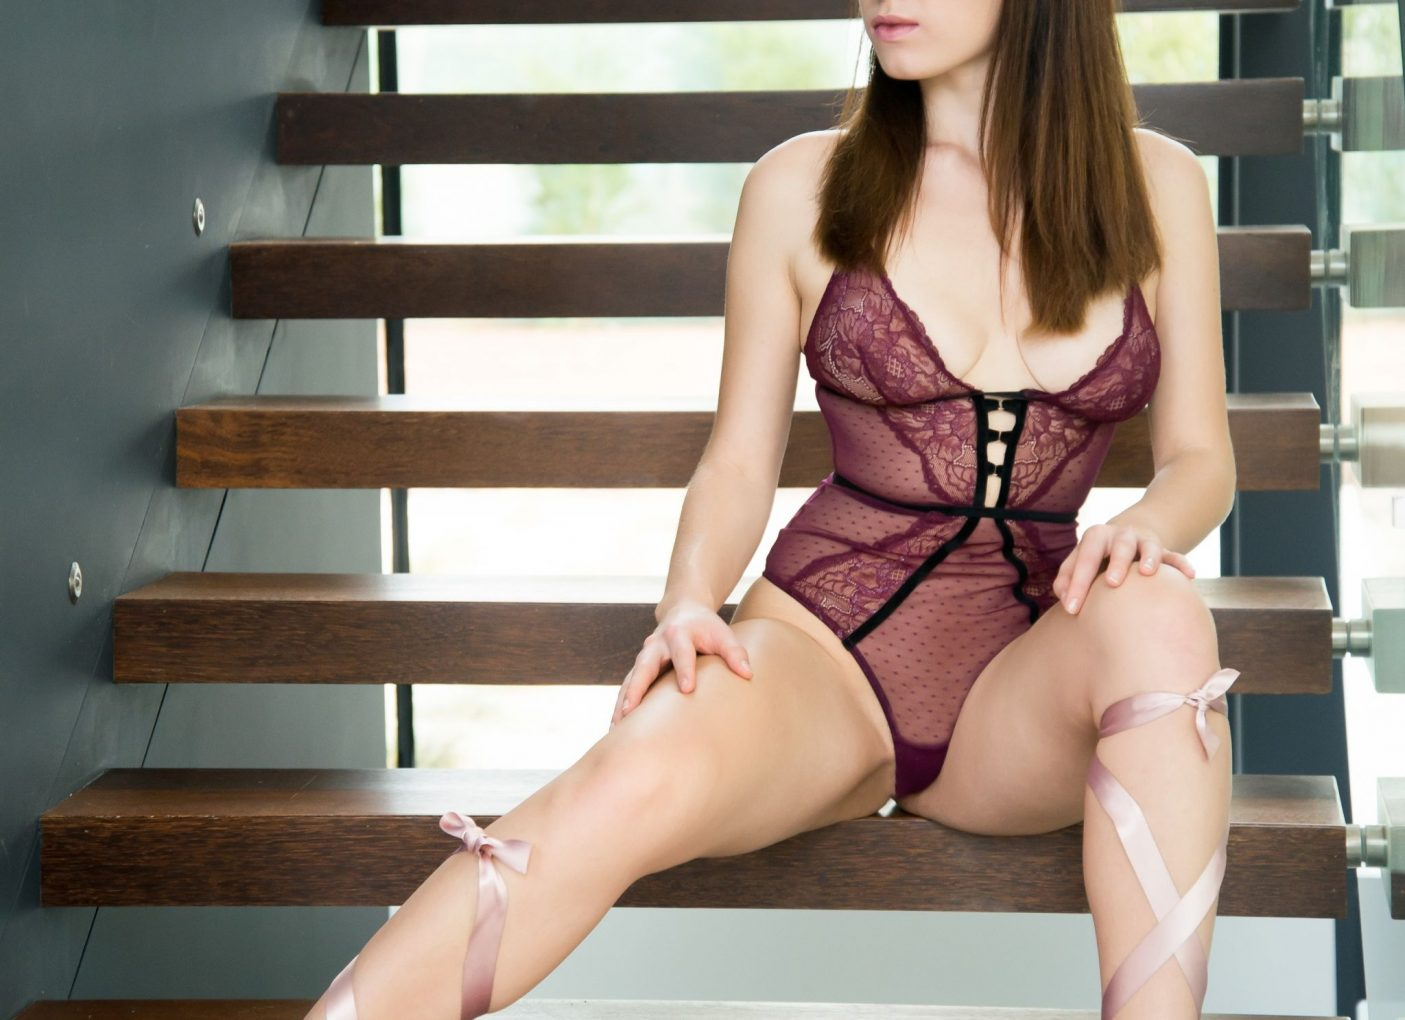 Morgan luxury escort paris -